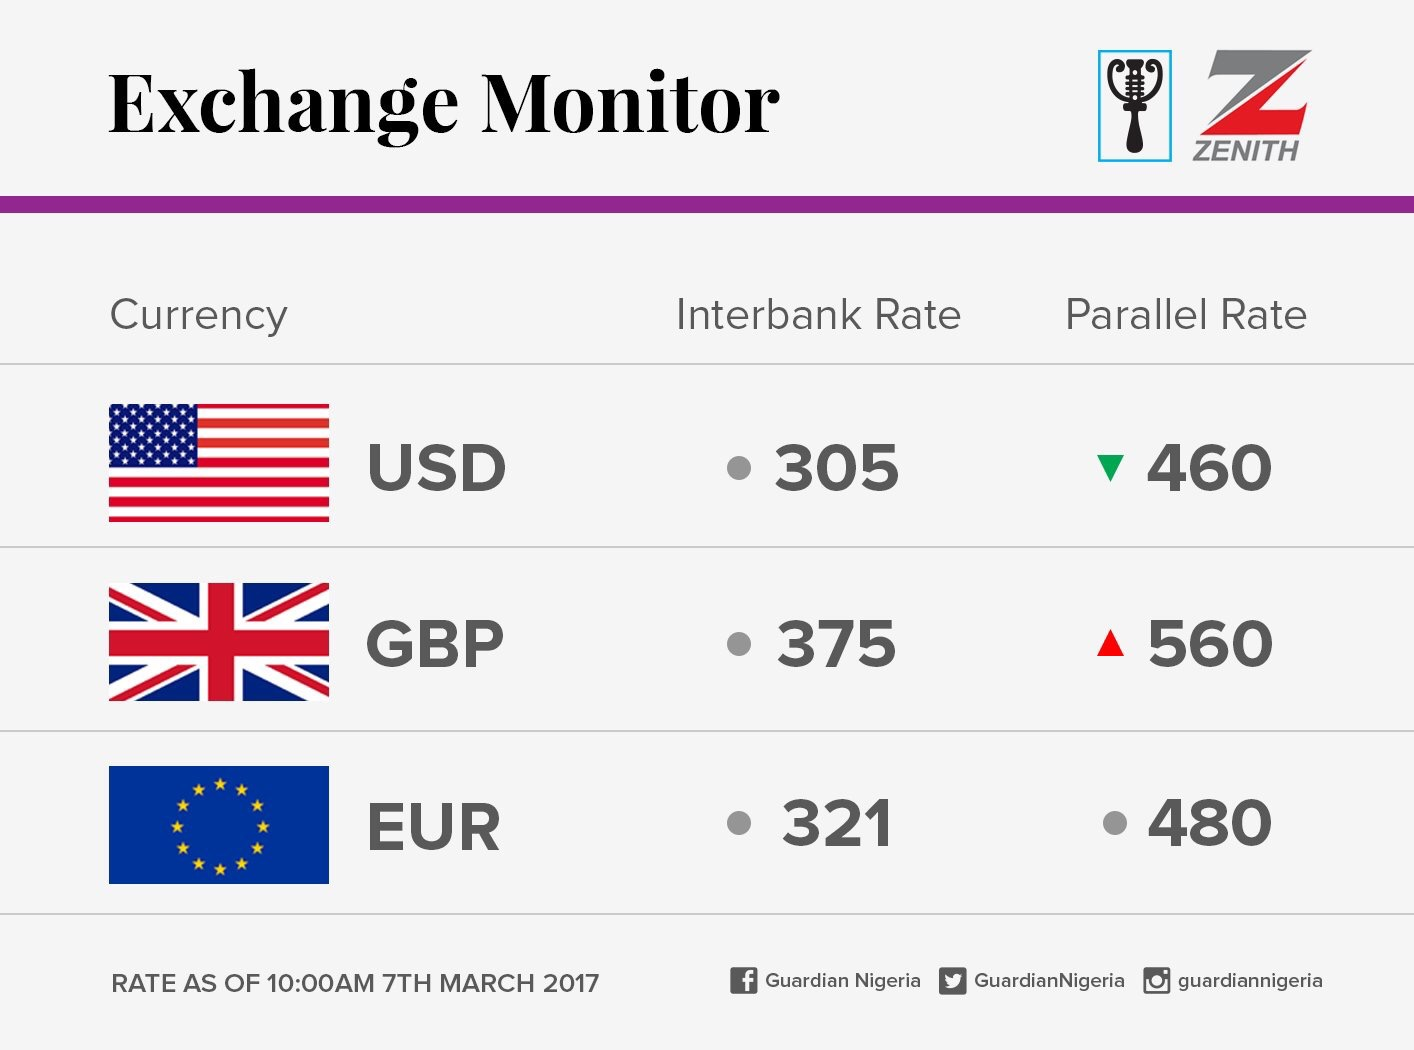 Exchange Rate For 7th March 2017